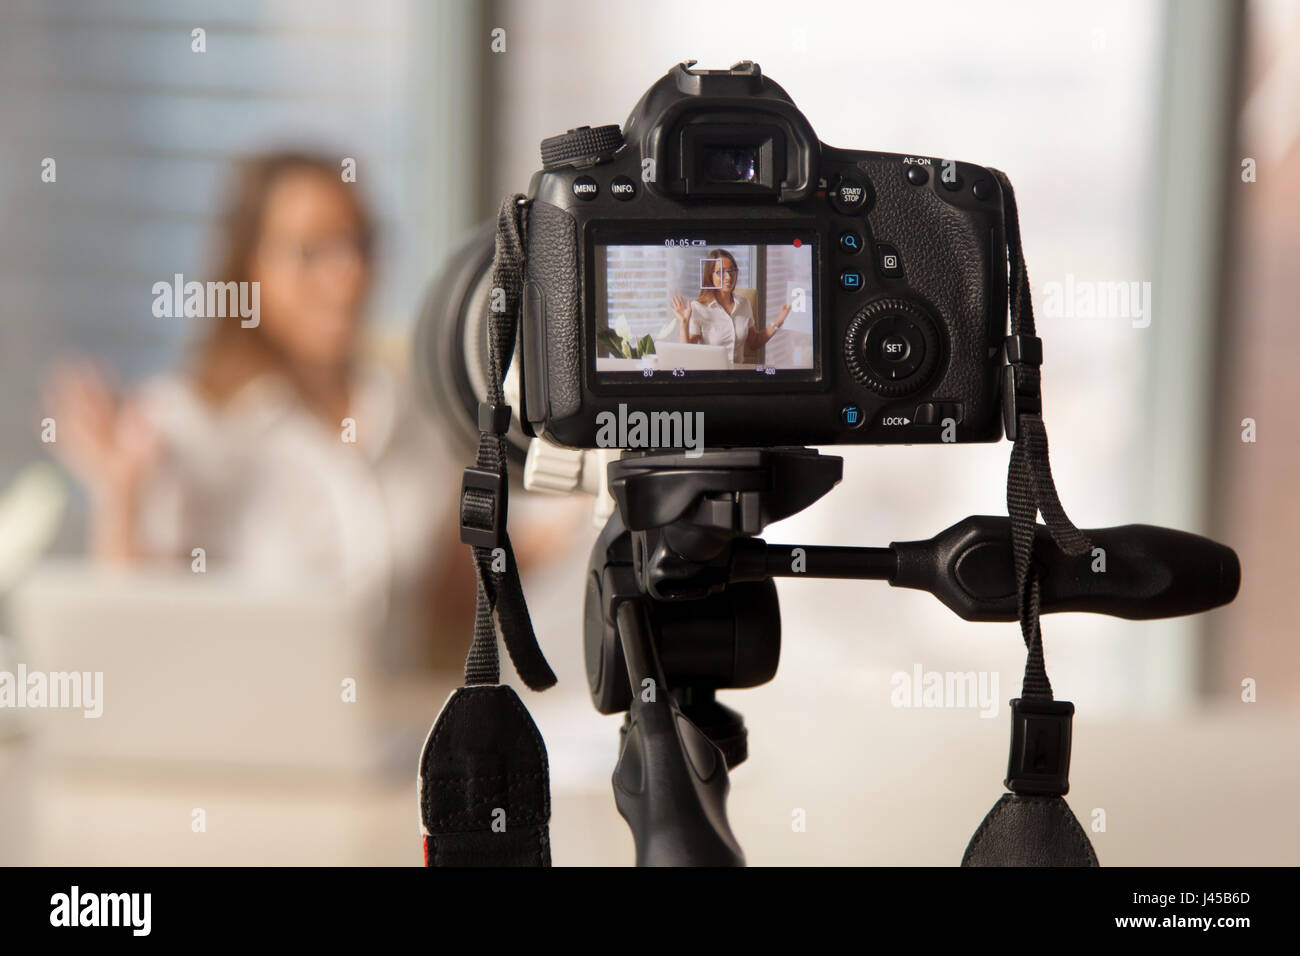 Recording business video on modern DSLR camera - Stock Image